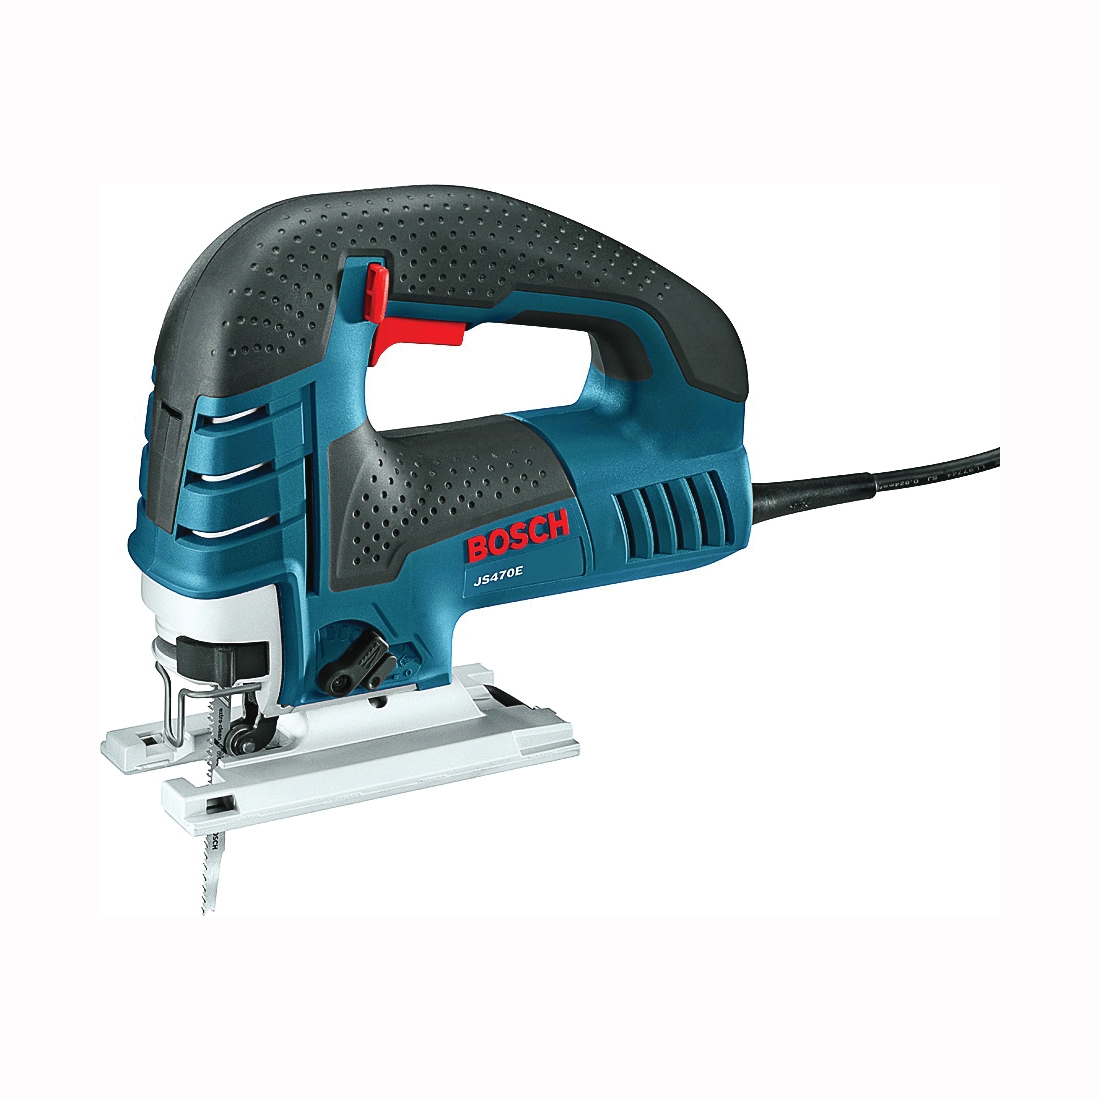 Picture of Bosch JS470E Jig Saw, 120 V, 7 A, 0.87 in Aluminum, 0.37 in Mild Steel, 5.875 in Soft Wood Cutting Capacity